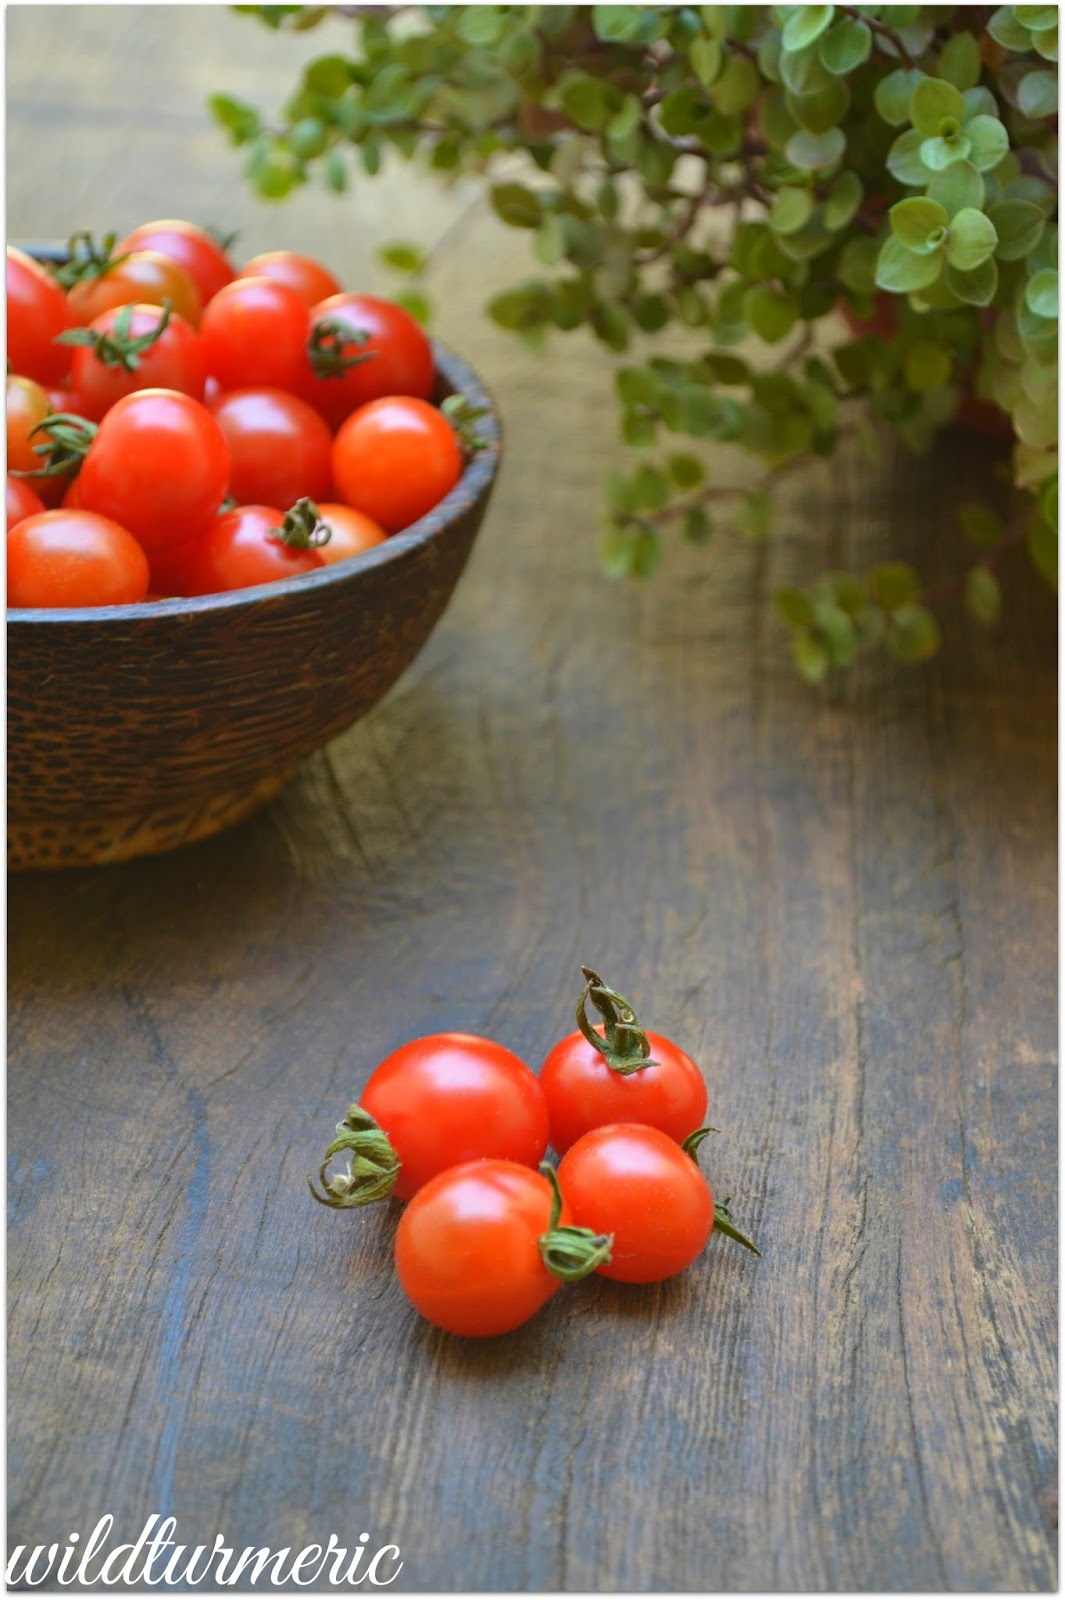 10 Top Skin & Health Benefits, Nutrition Of Eating Tomatoes & Applying On Face Everyday